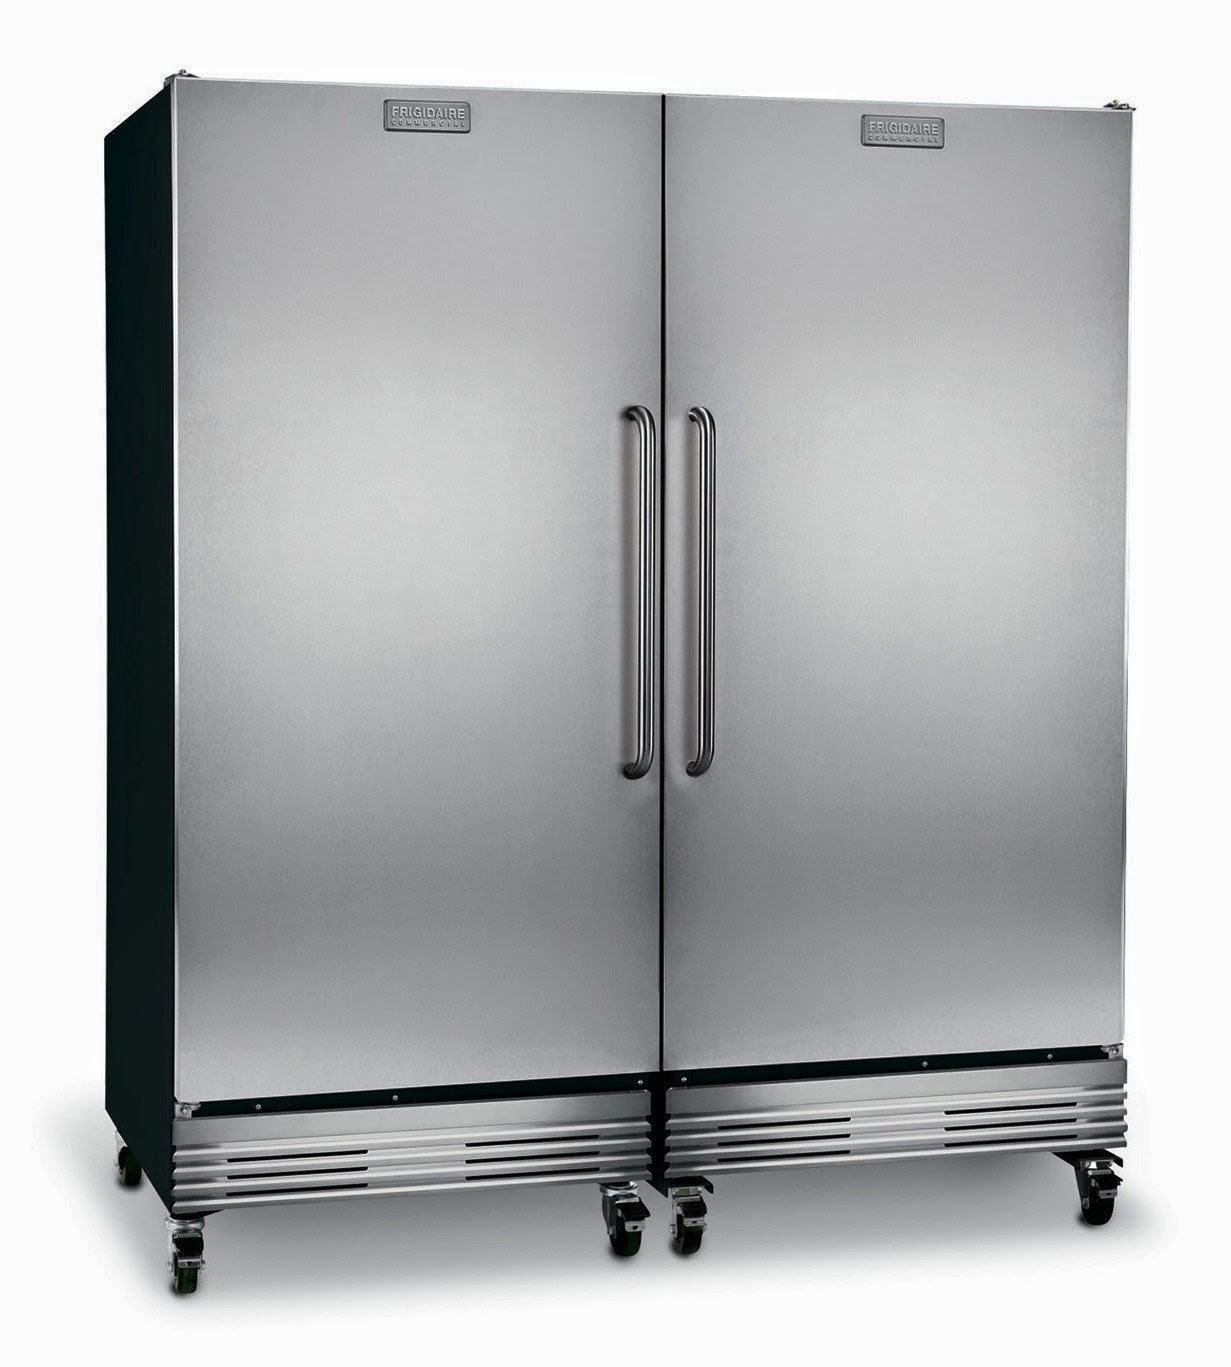 Best commercial refrigerator frigidaire commercial